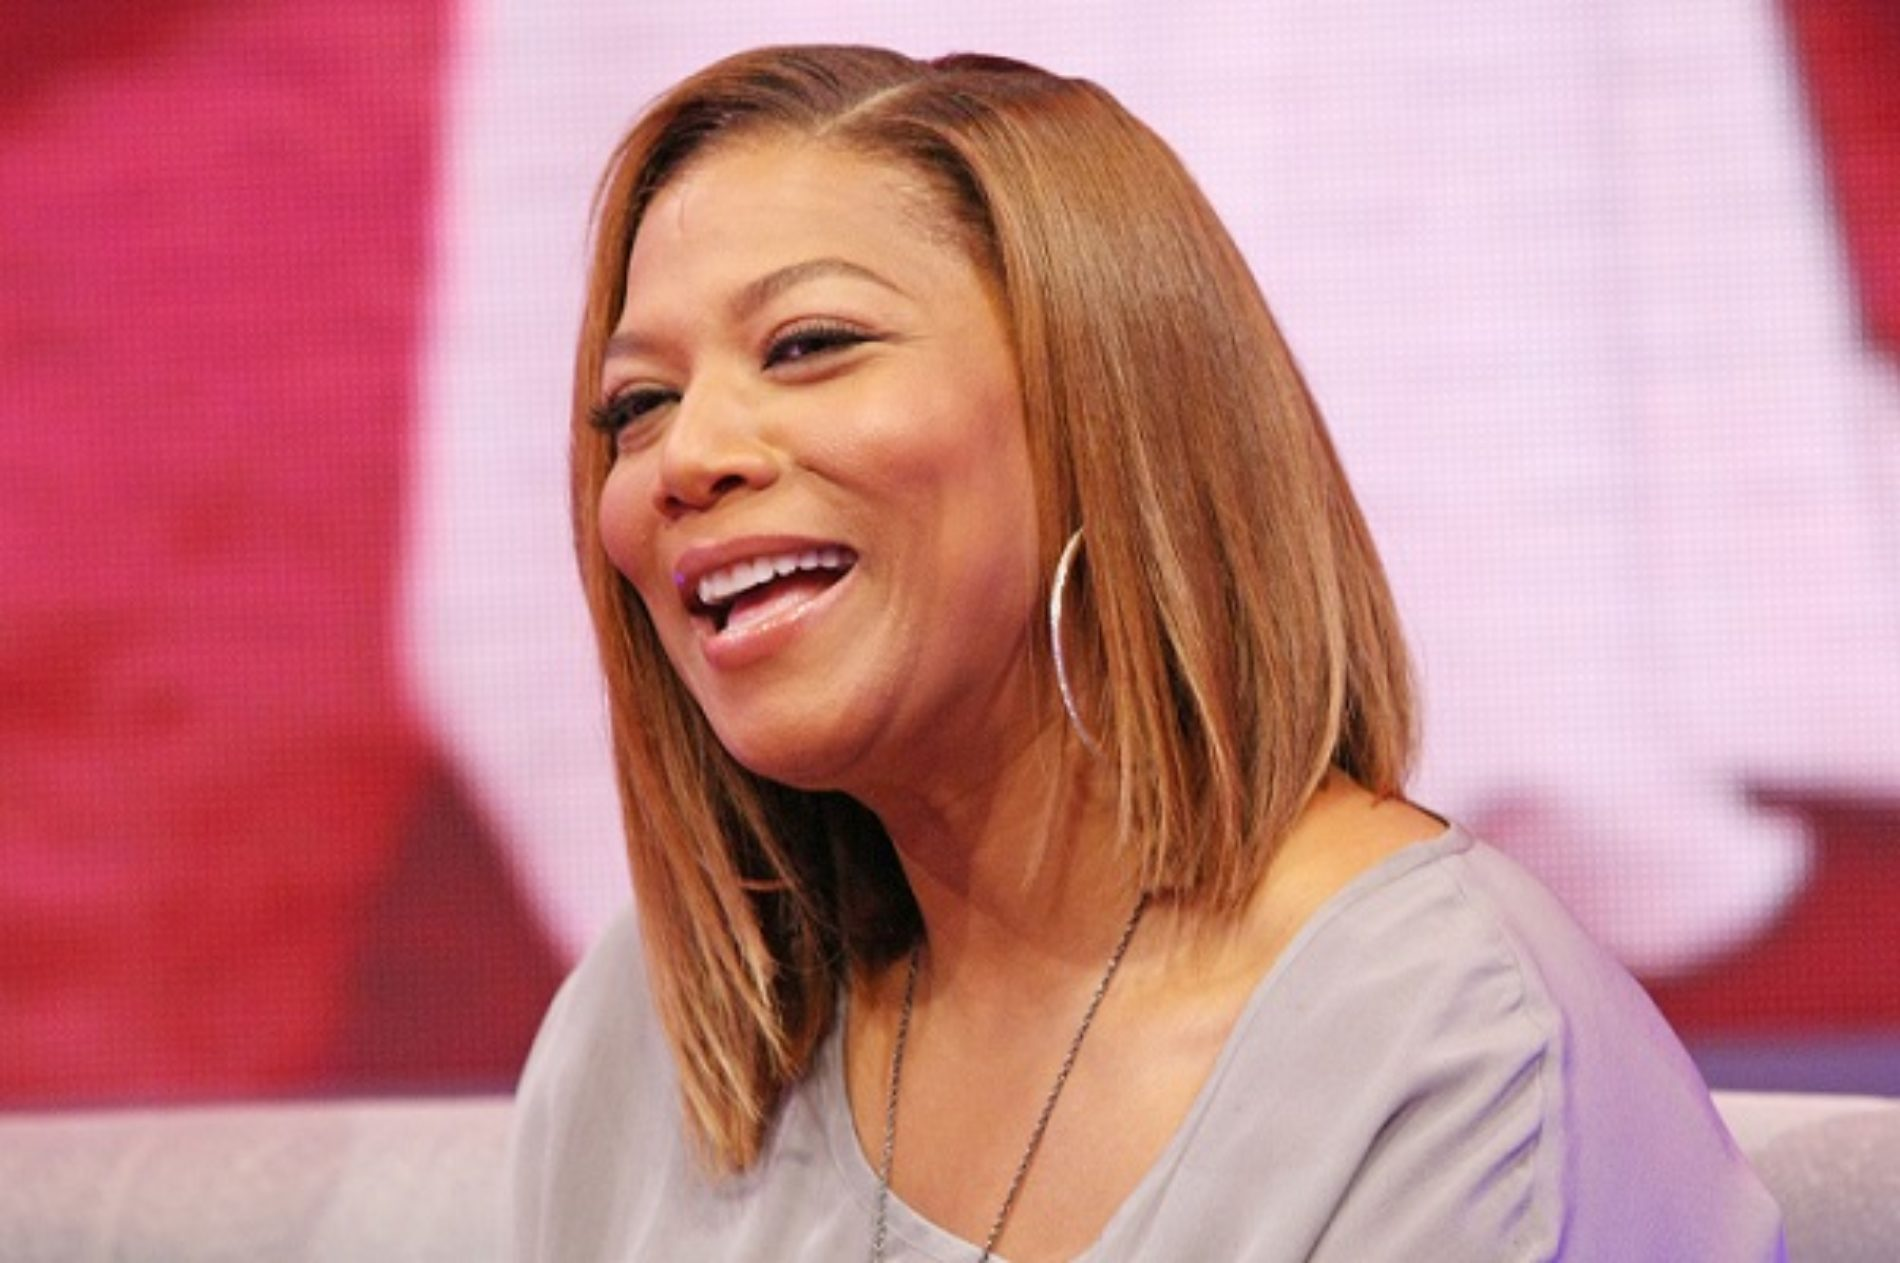 'There's always been gay people in the black community.' – Queen Latifah